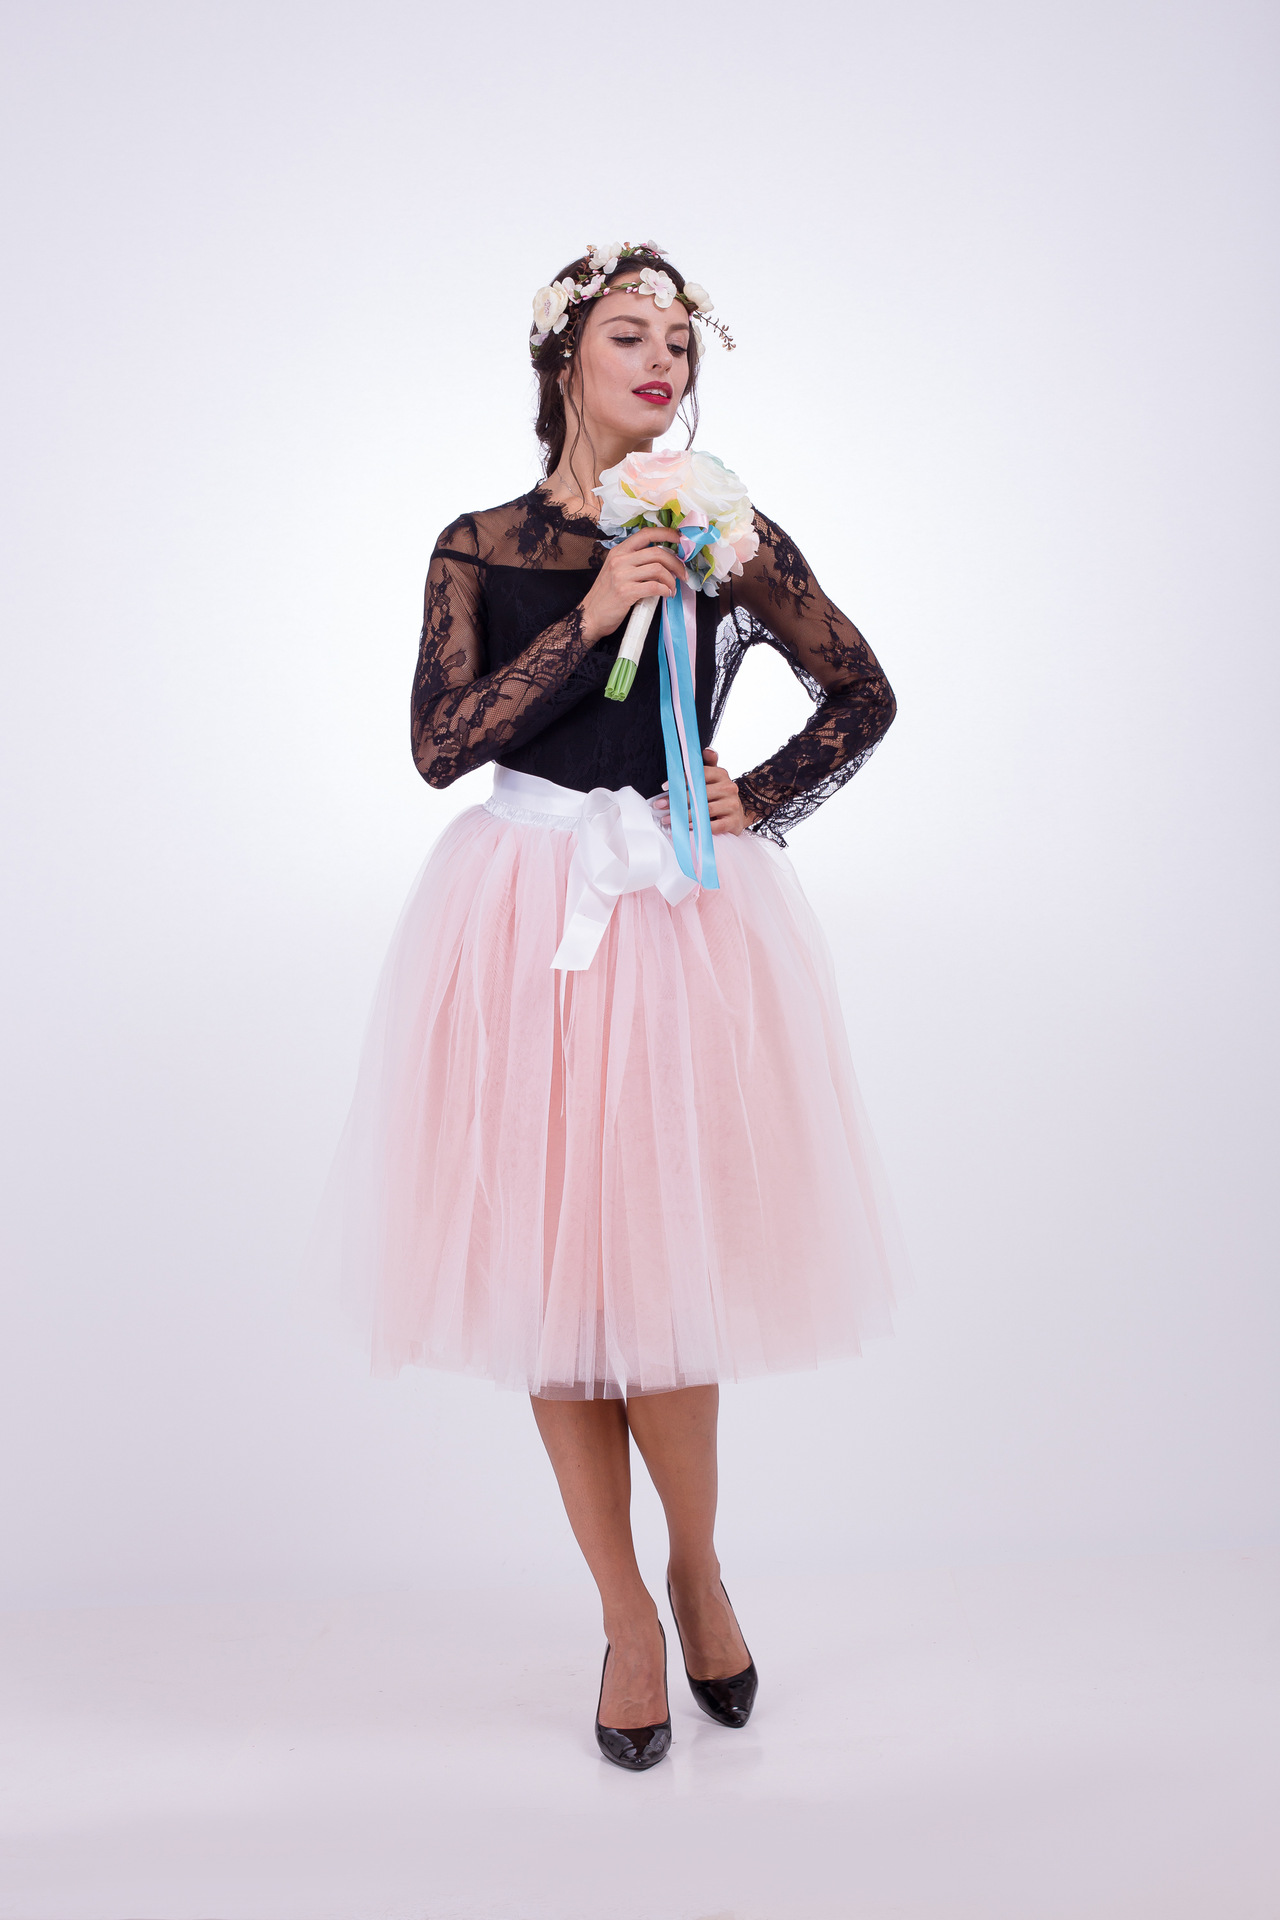 6 Layers Multi Color Tulle Midi Skirt Women Fashion Adult Tutu Skirts Mesh Bridesmaid Wedding Party Skirt off white+pink